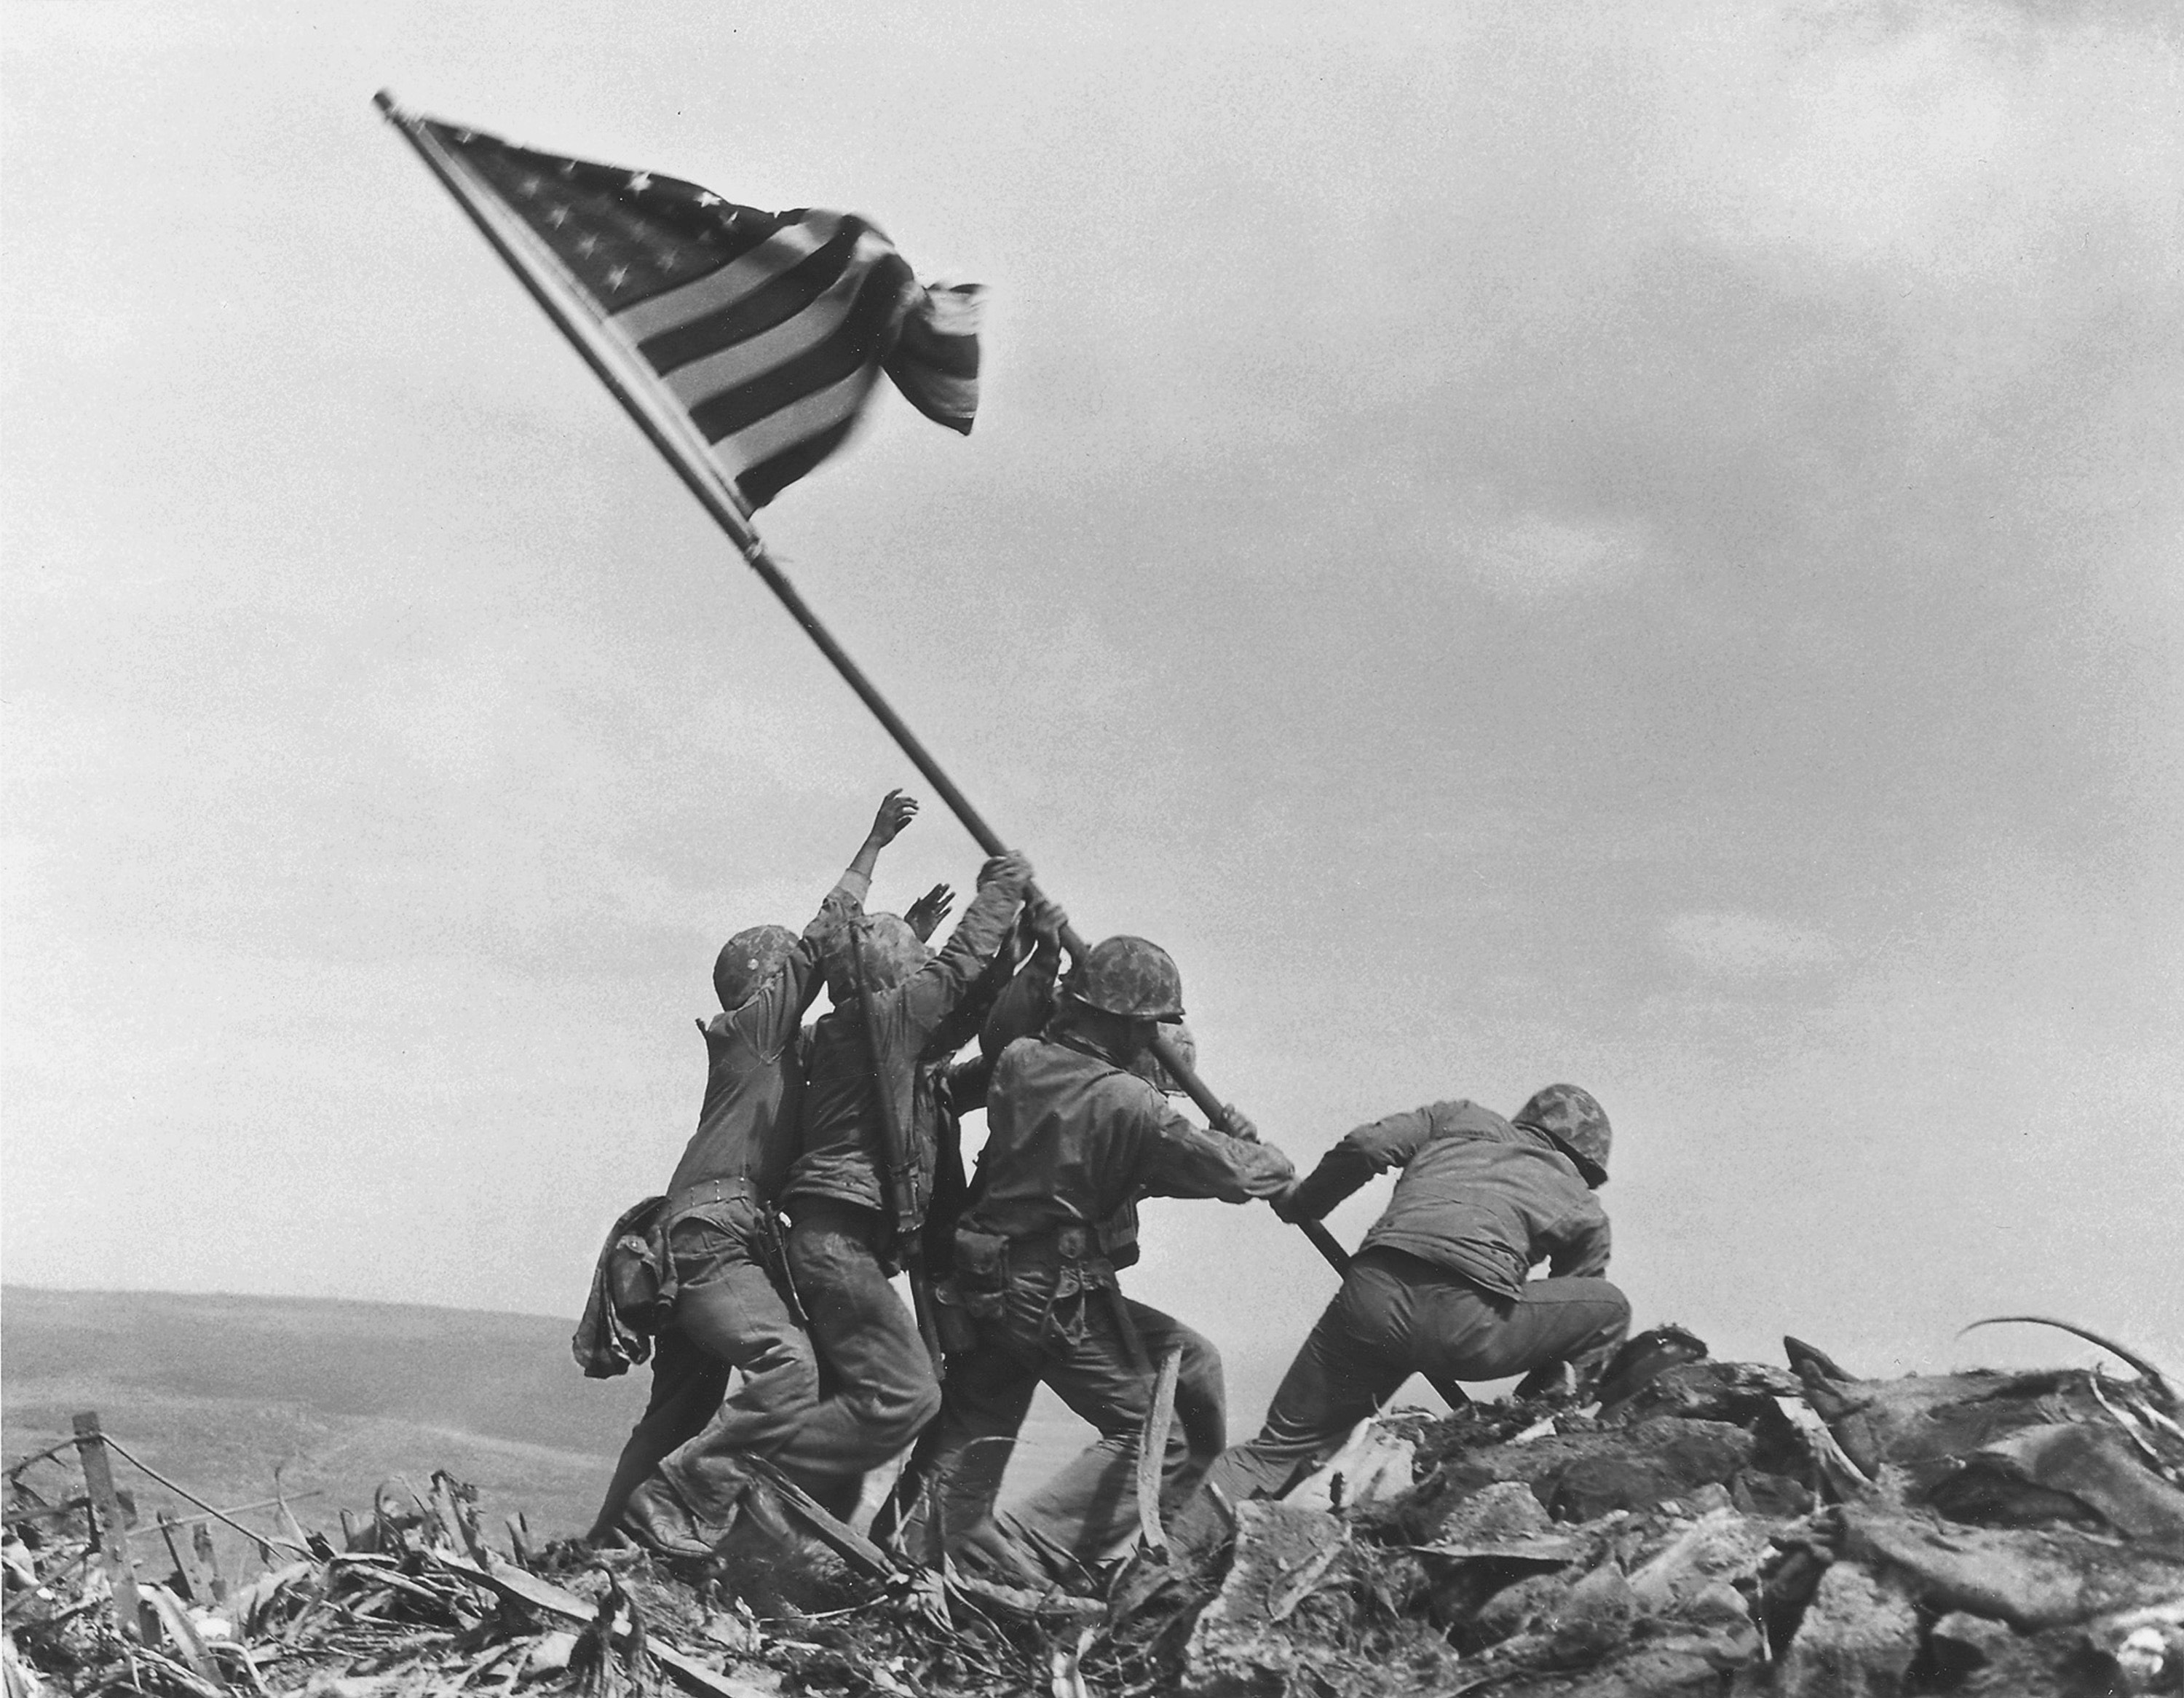 U.S. Marines of the 28th Regiment, 5th Division, raise the American flag atop Mount Suribachi, Iwo Jima, on Feb. 23, 1945.